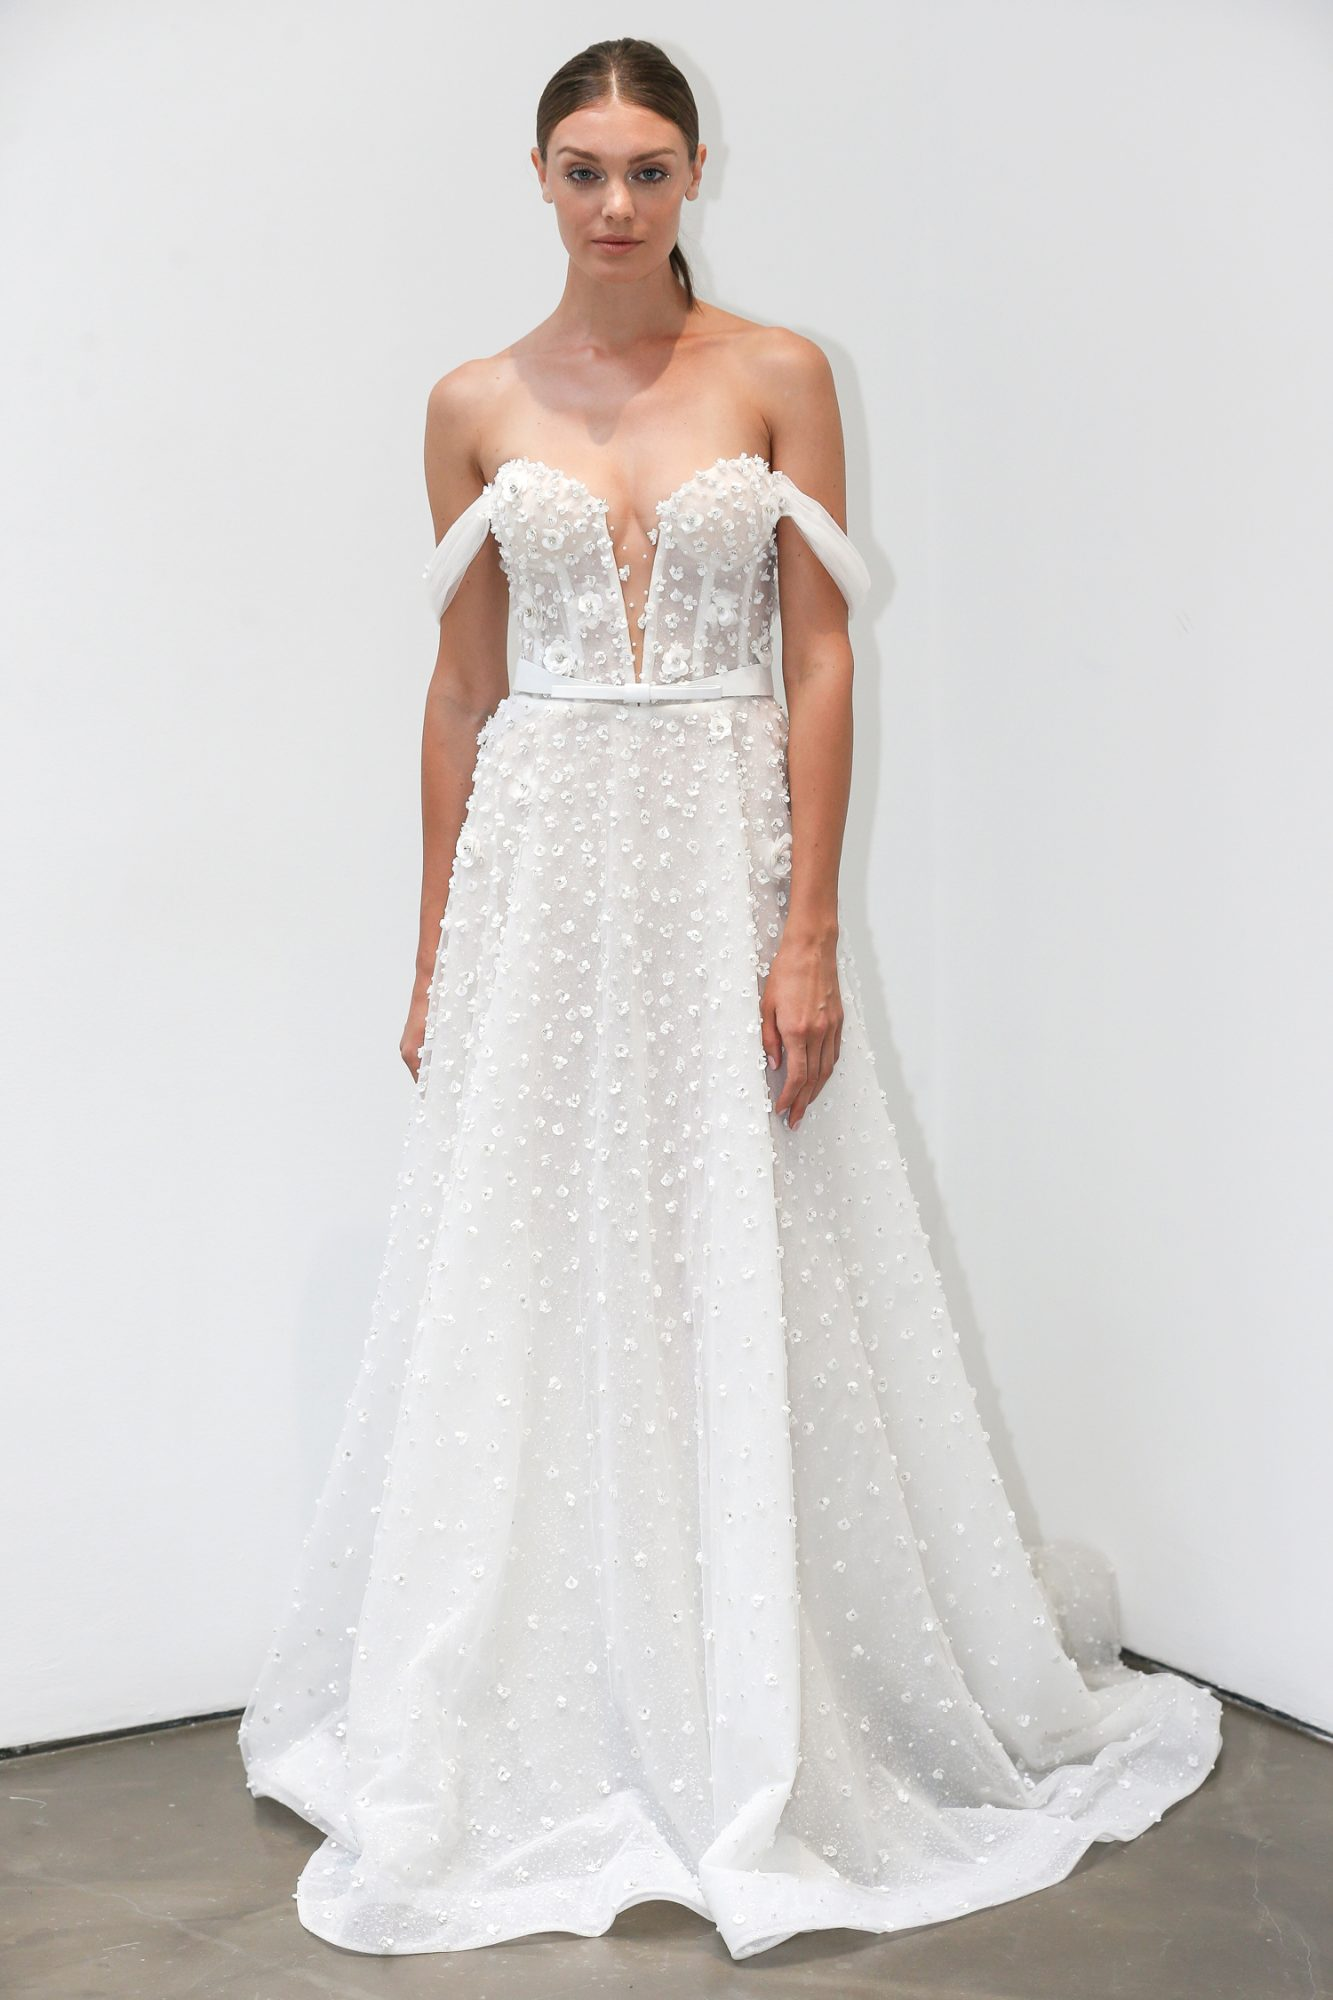 lee petra grebenau fall 2019 belted off the shoulder a-line gown with floral applique